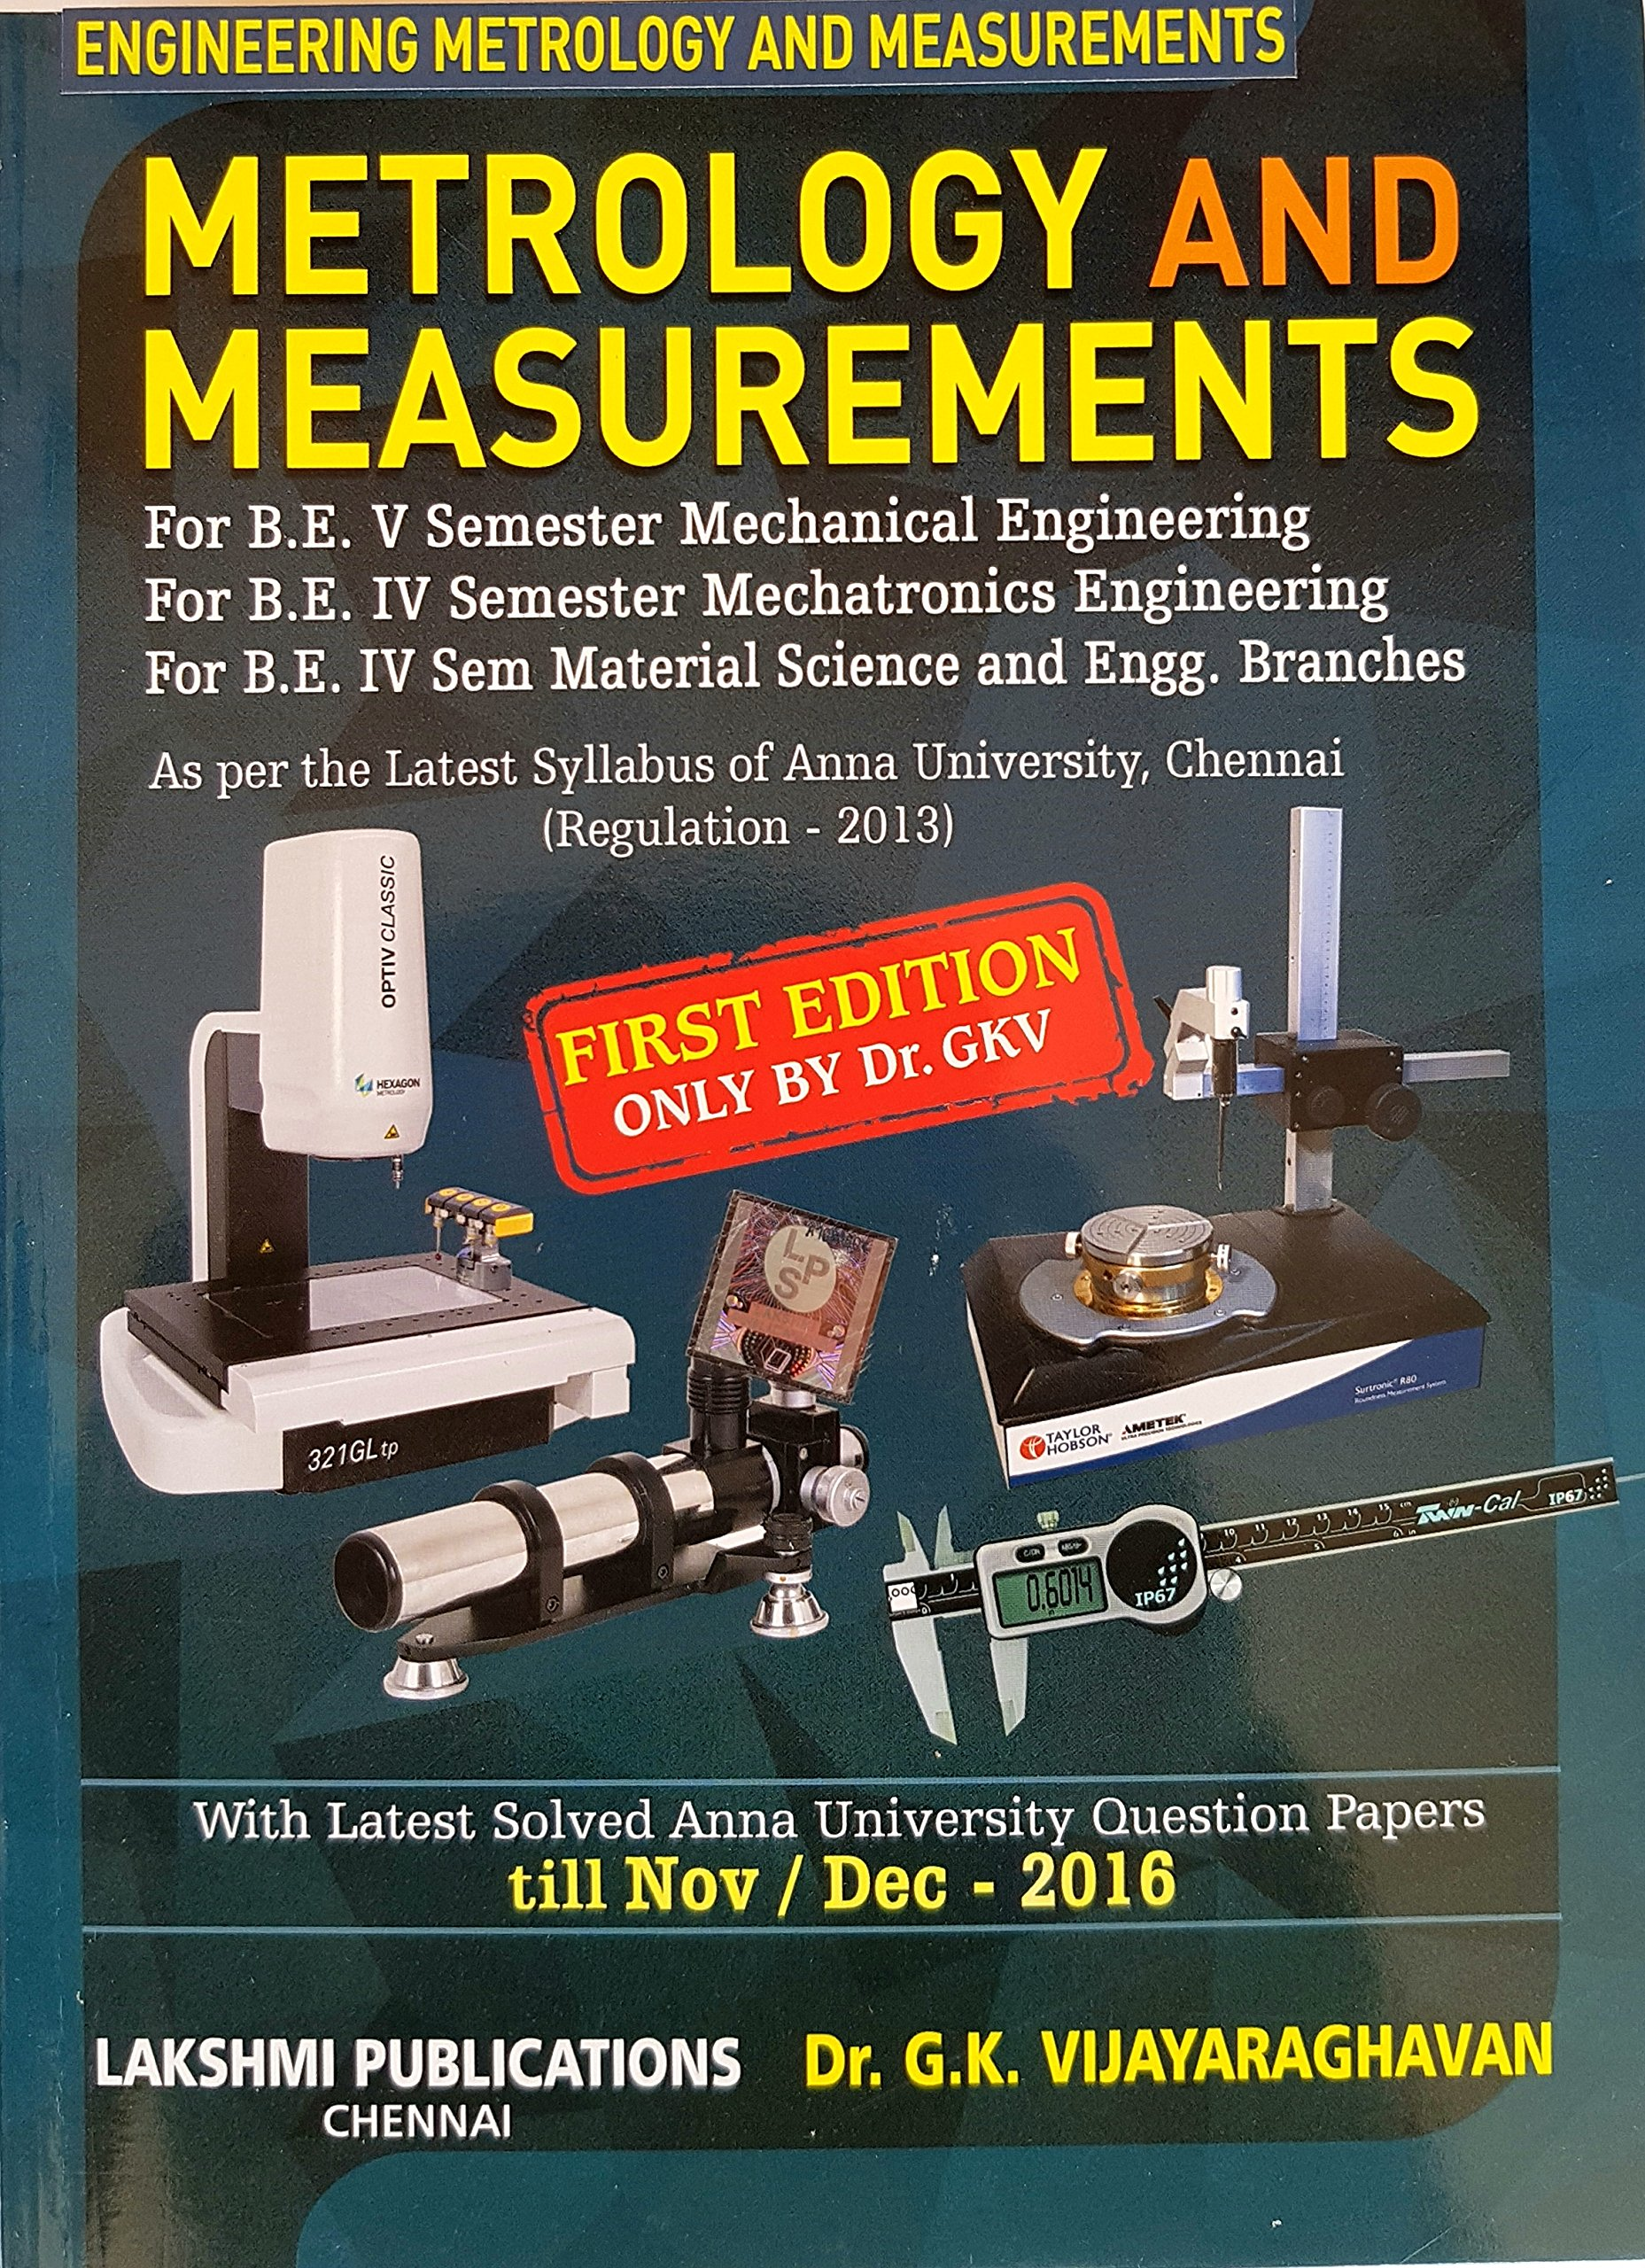 engineering metrology and measurements book by vijayaraghavan